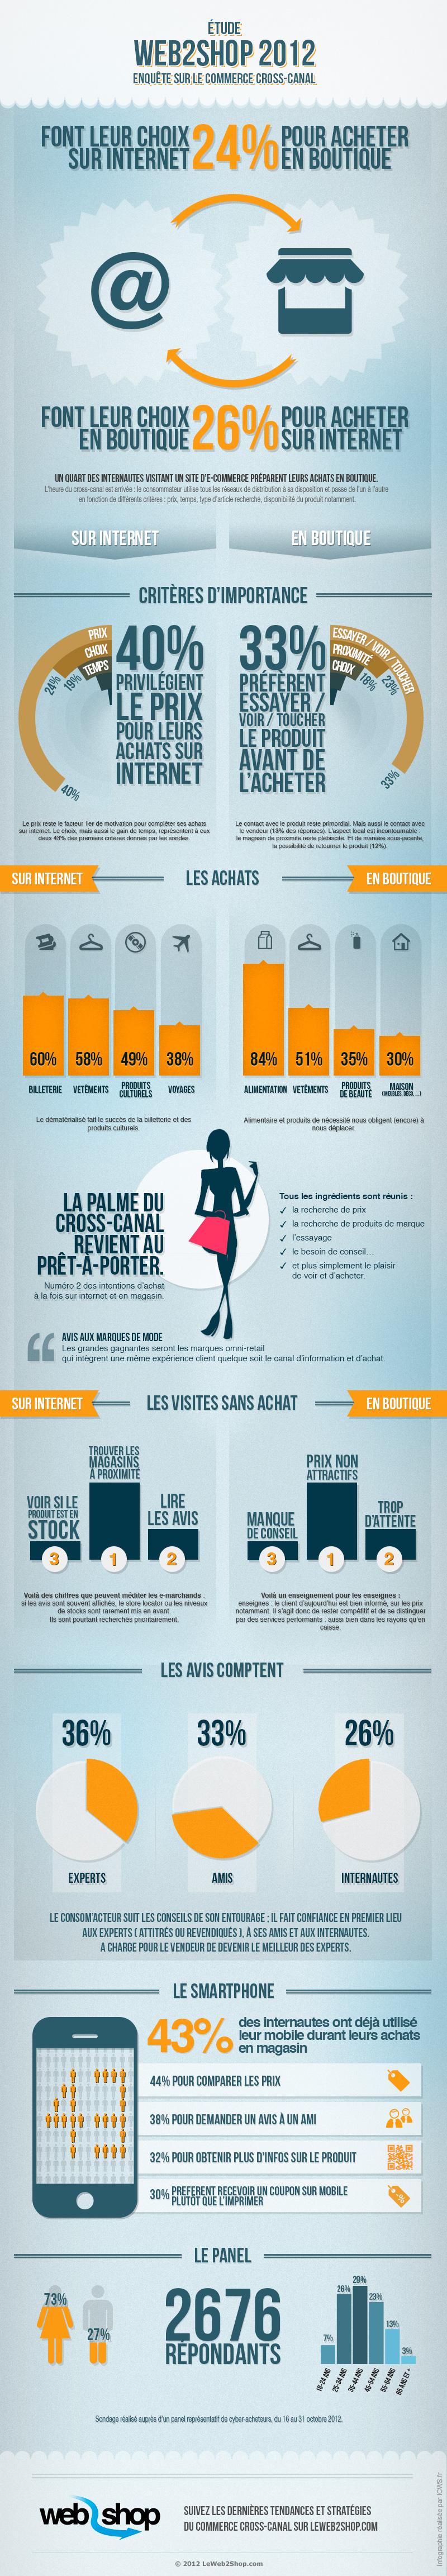 infographie web2shop